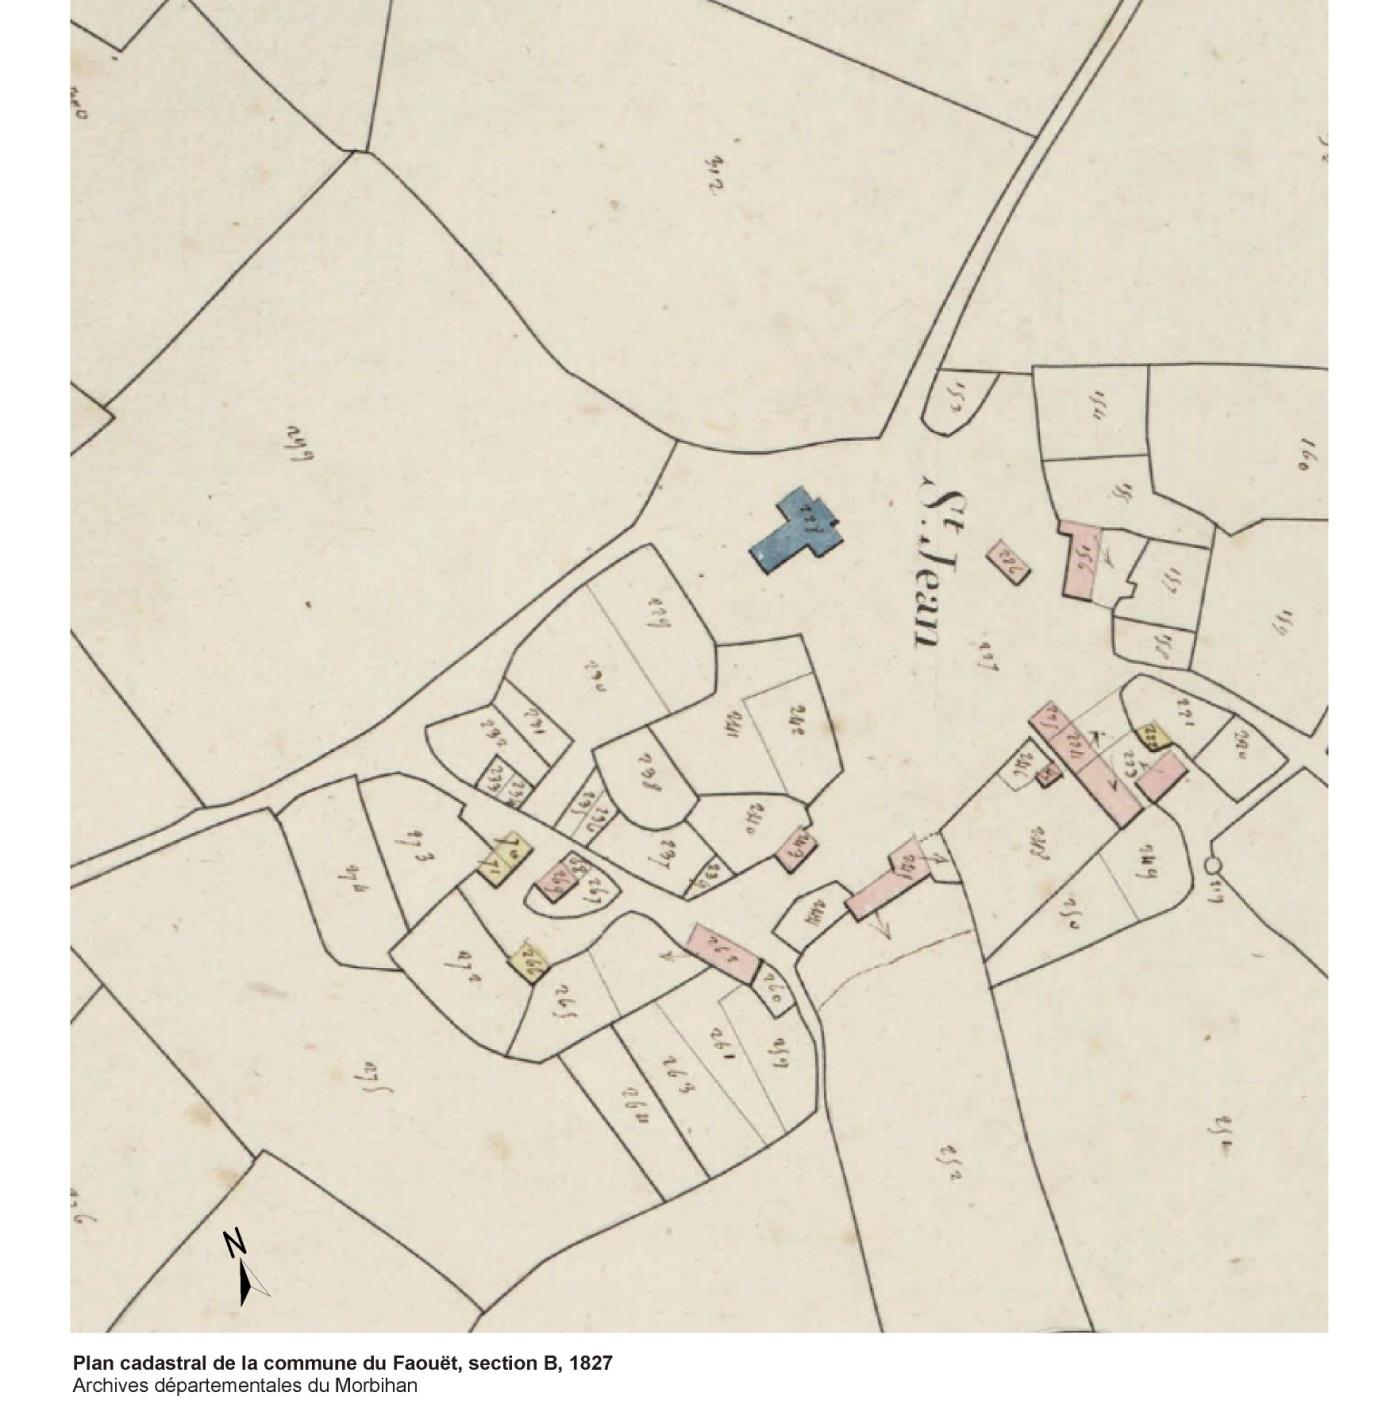 Plan cadastral de la commune du Faouët, section B, 1827 - Archives départementales du Morbihan, 3P 148/4